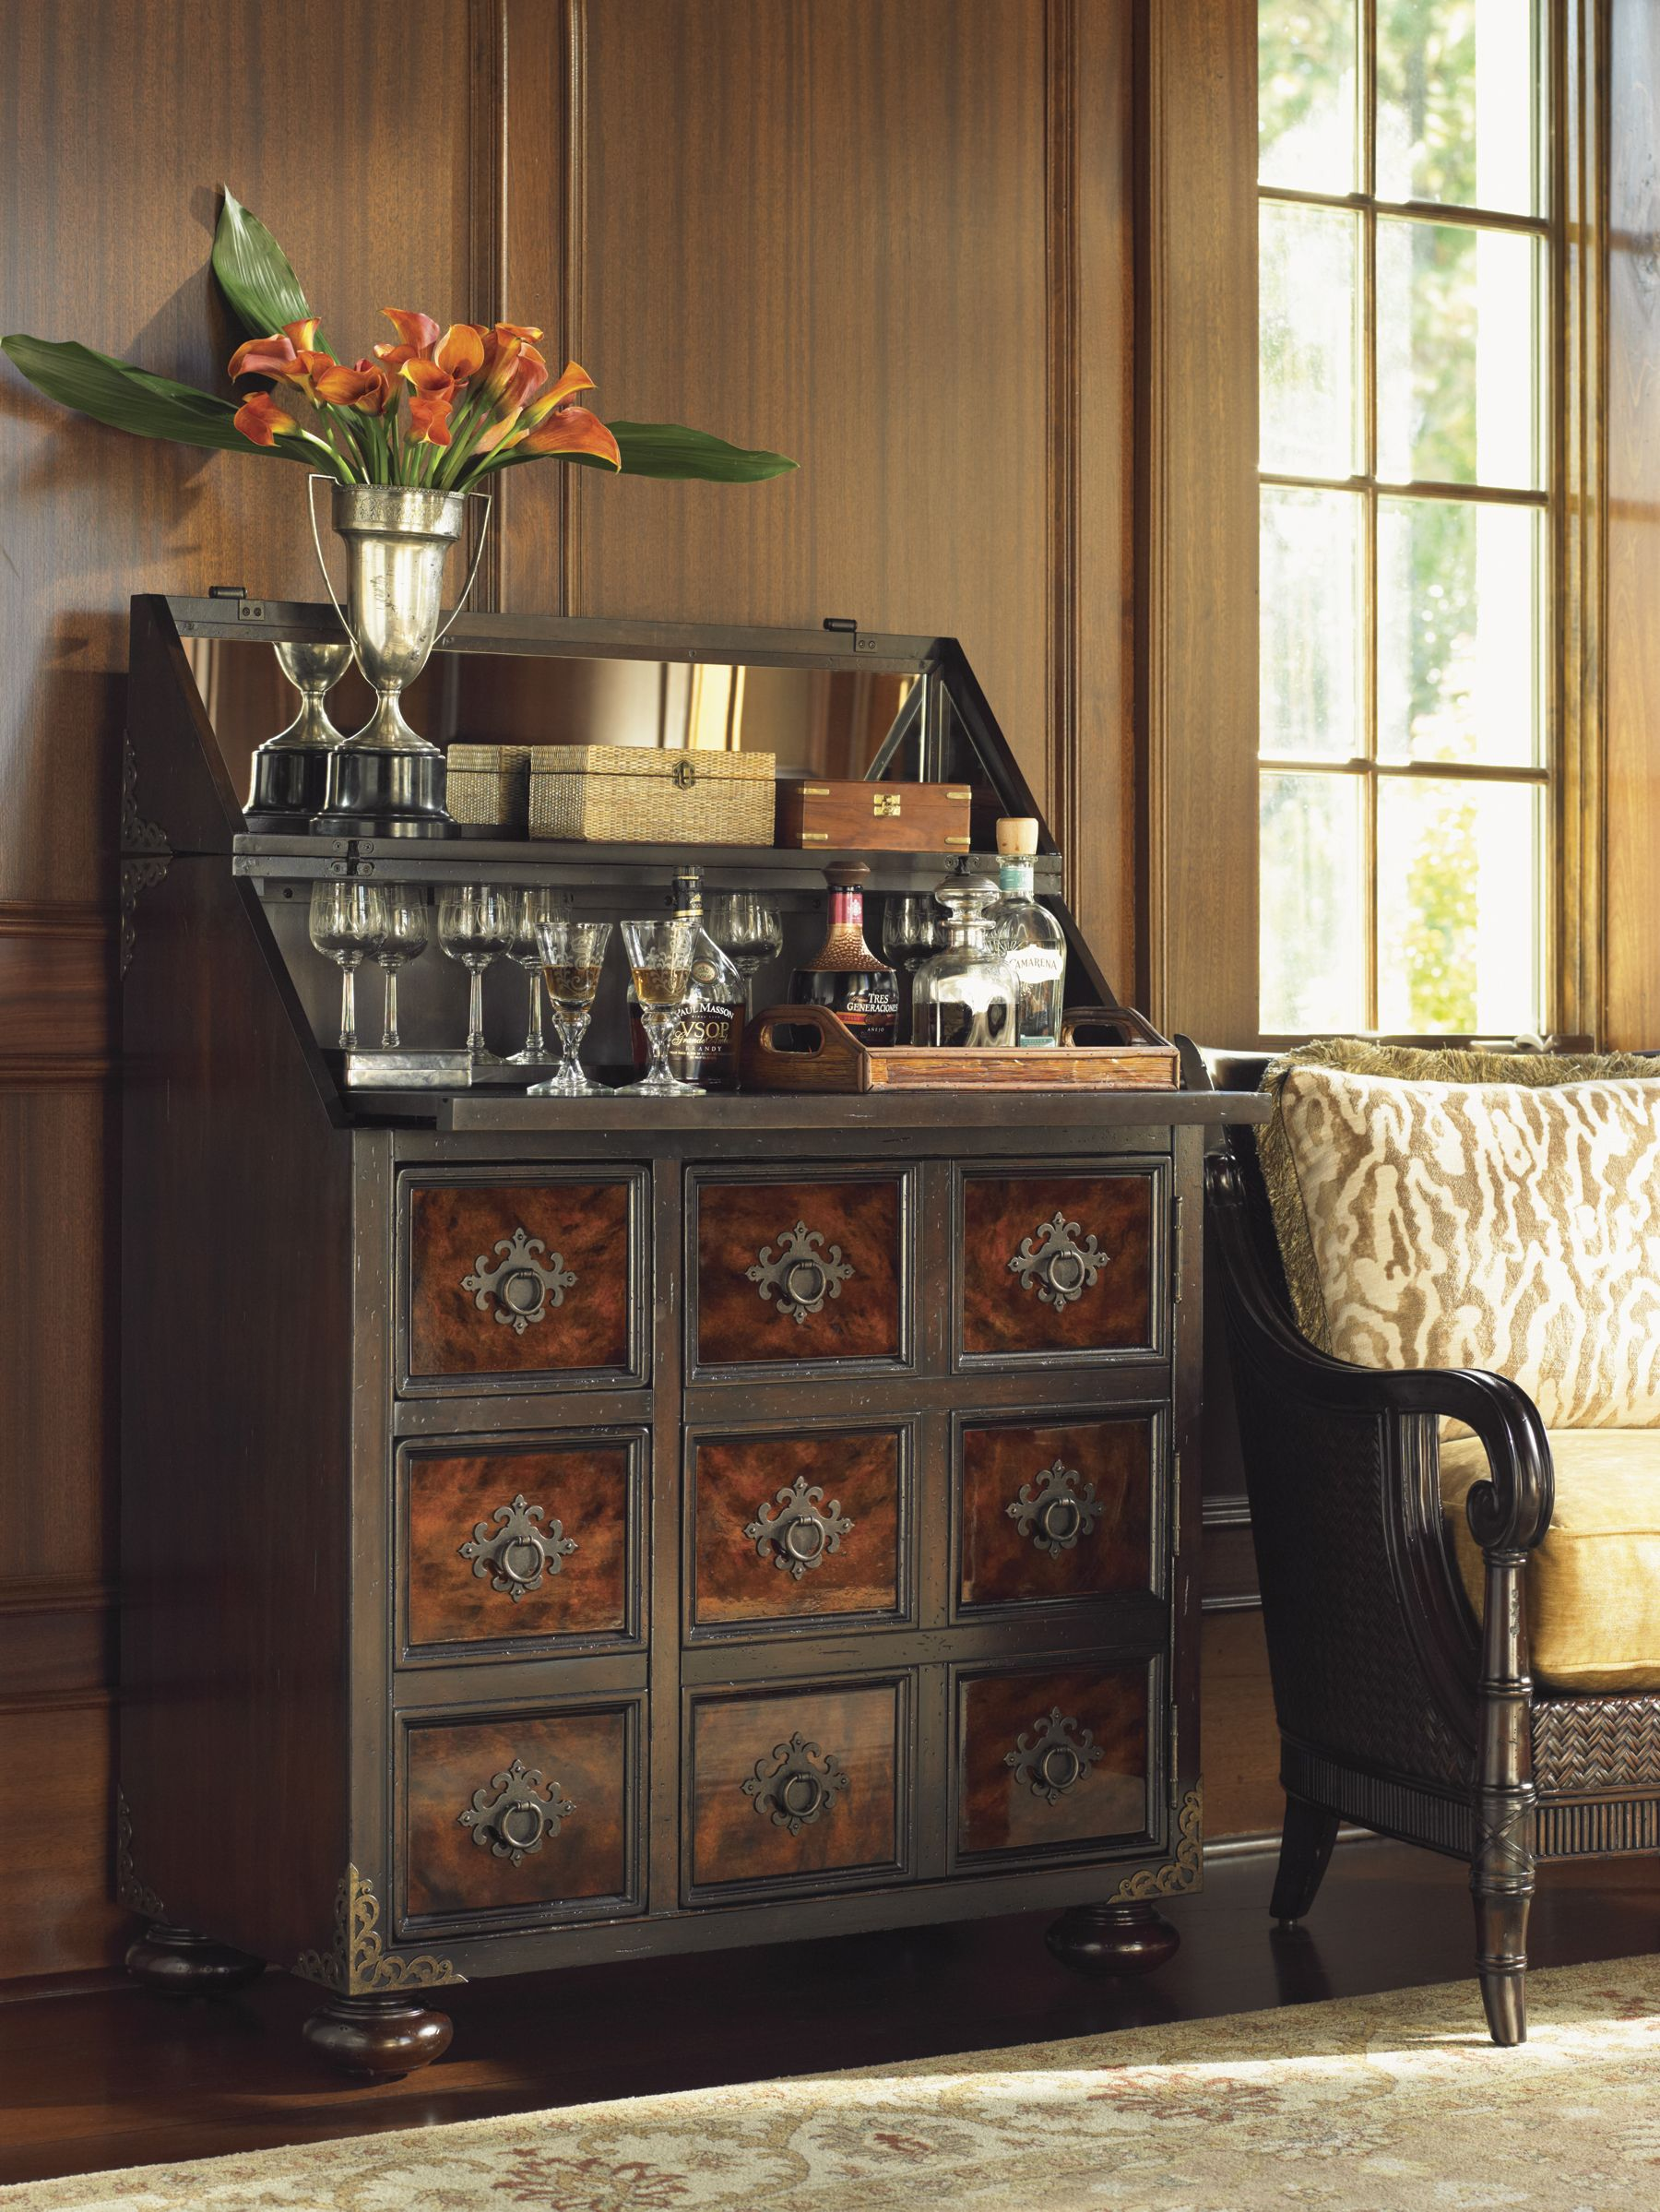 Tommy Bahama Home Island Traditions Churchill Bar Cabinet LVMkt NancyGrace